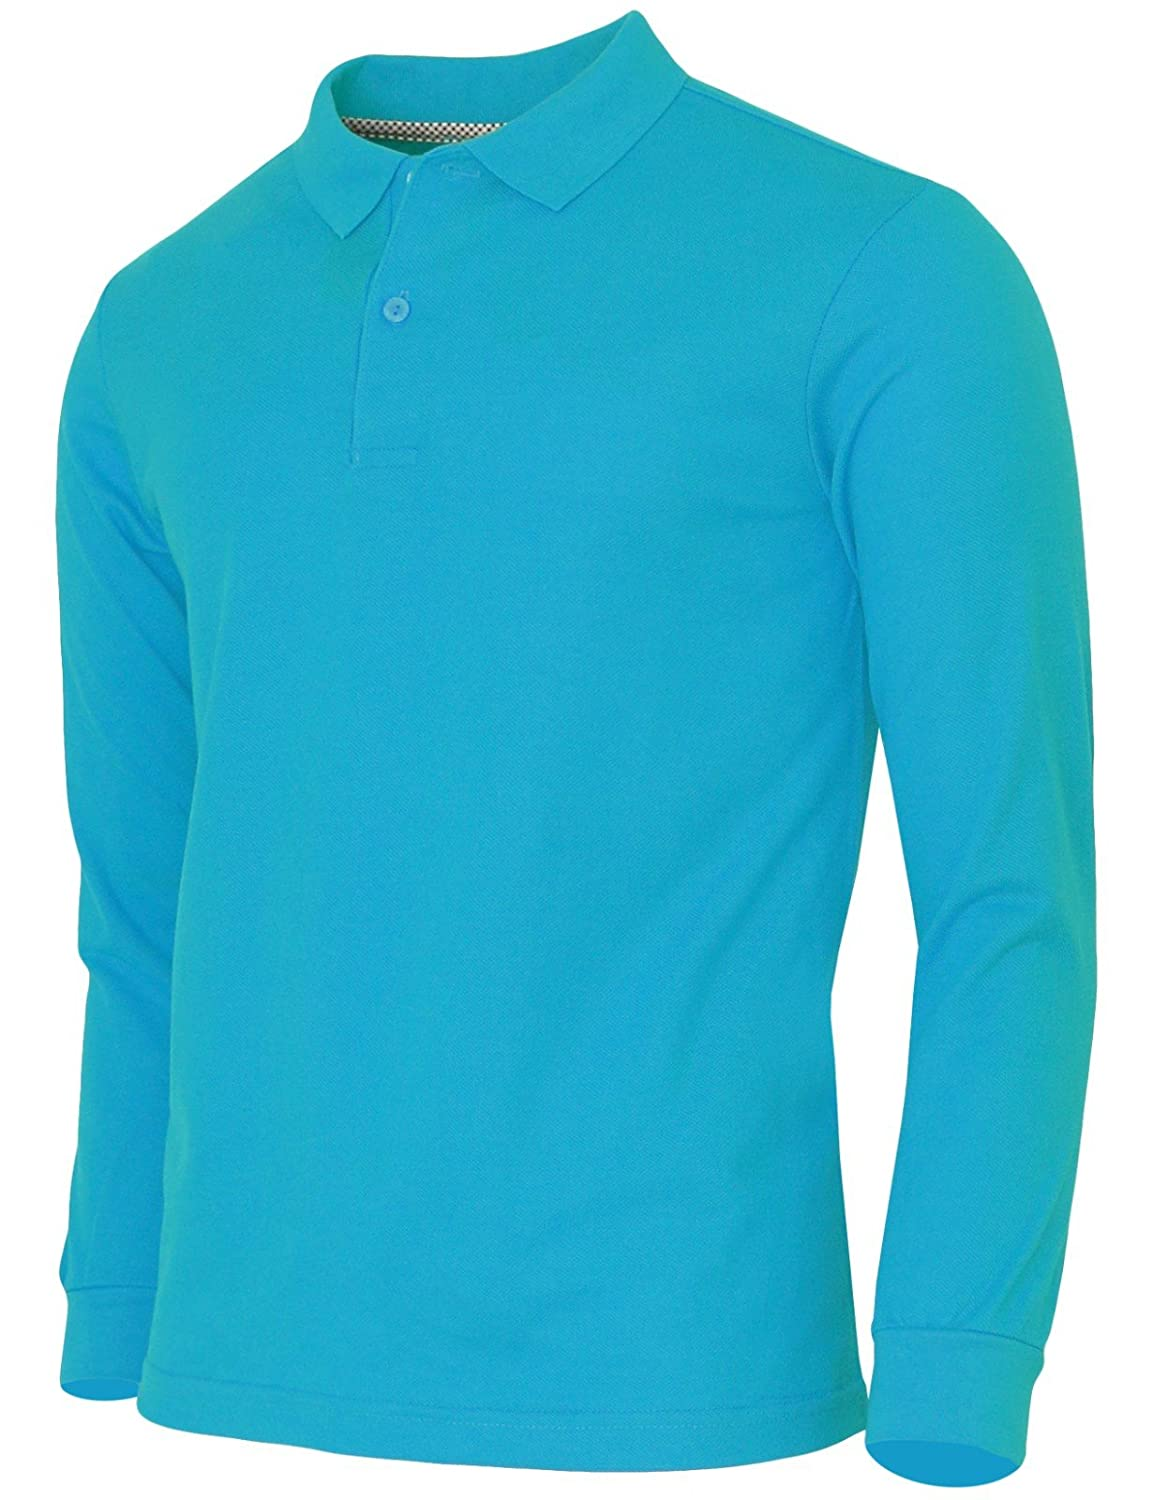 1f295fd42 Basic Polo Shirt of casual and sporty design is perfect for Leisure  activity or Casual daily wear.